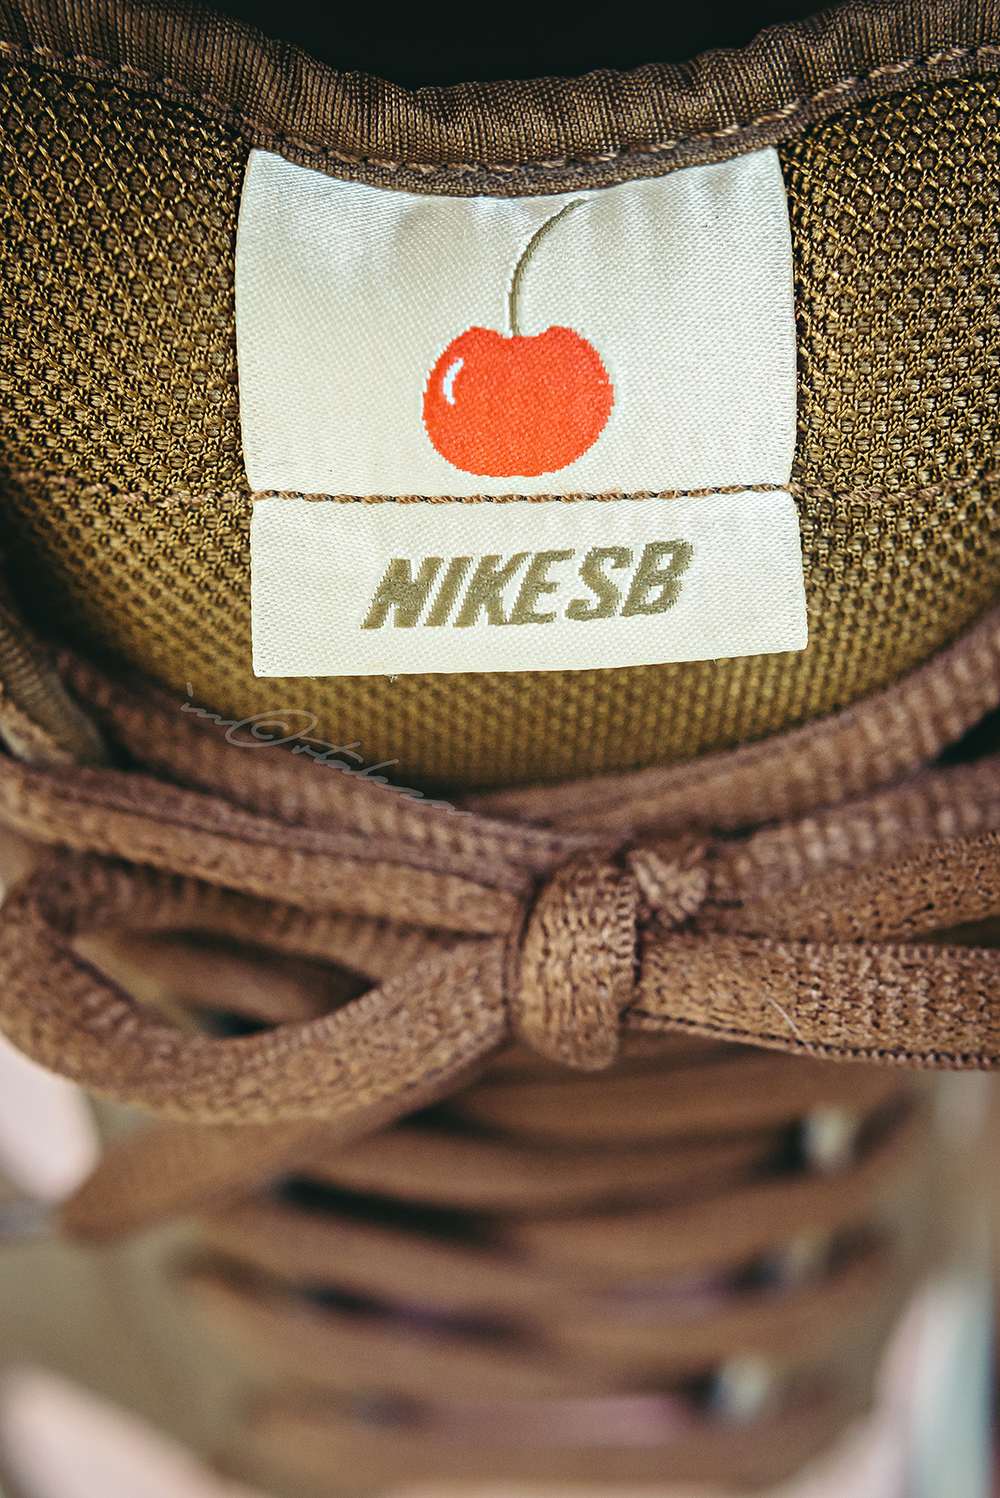 Nike Dunk SB Stussy Sneakers WDIWT Photography